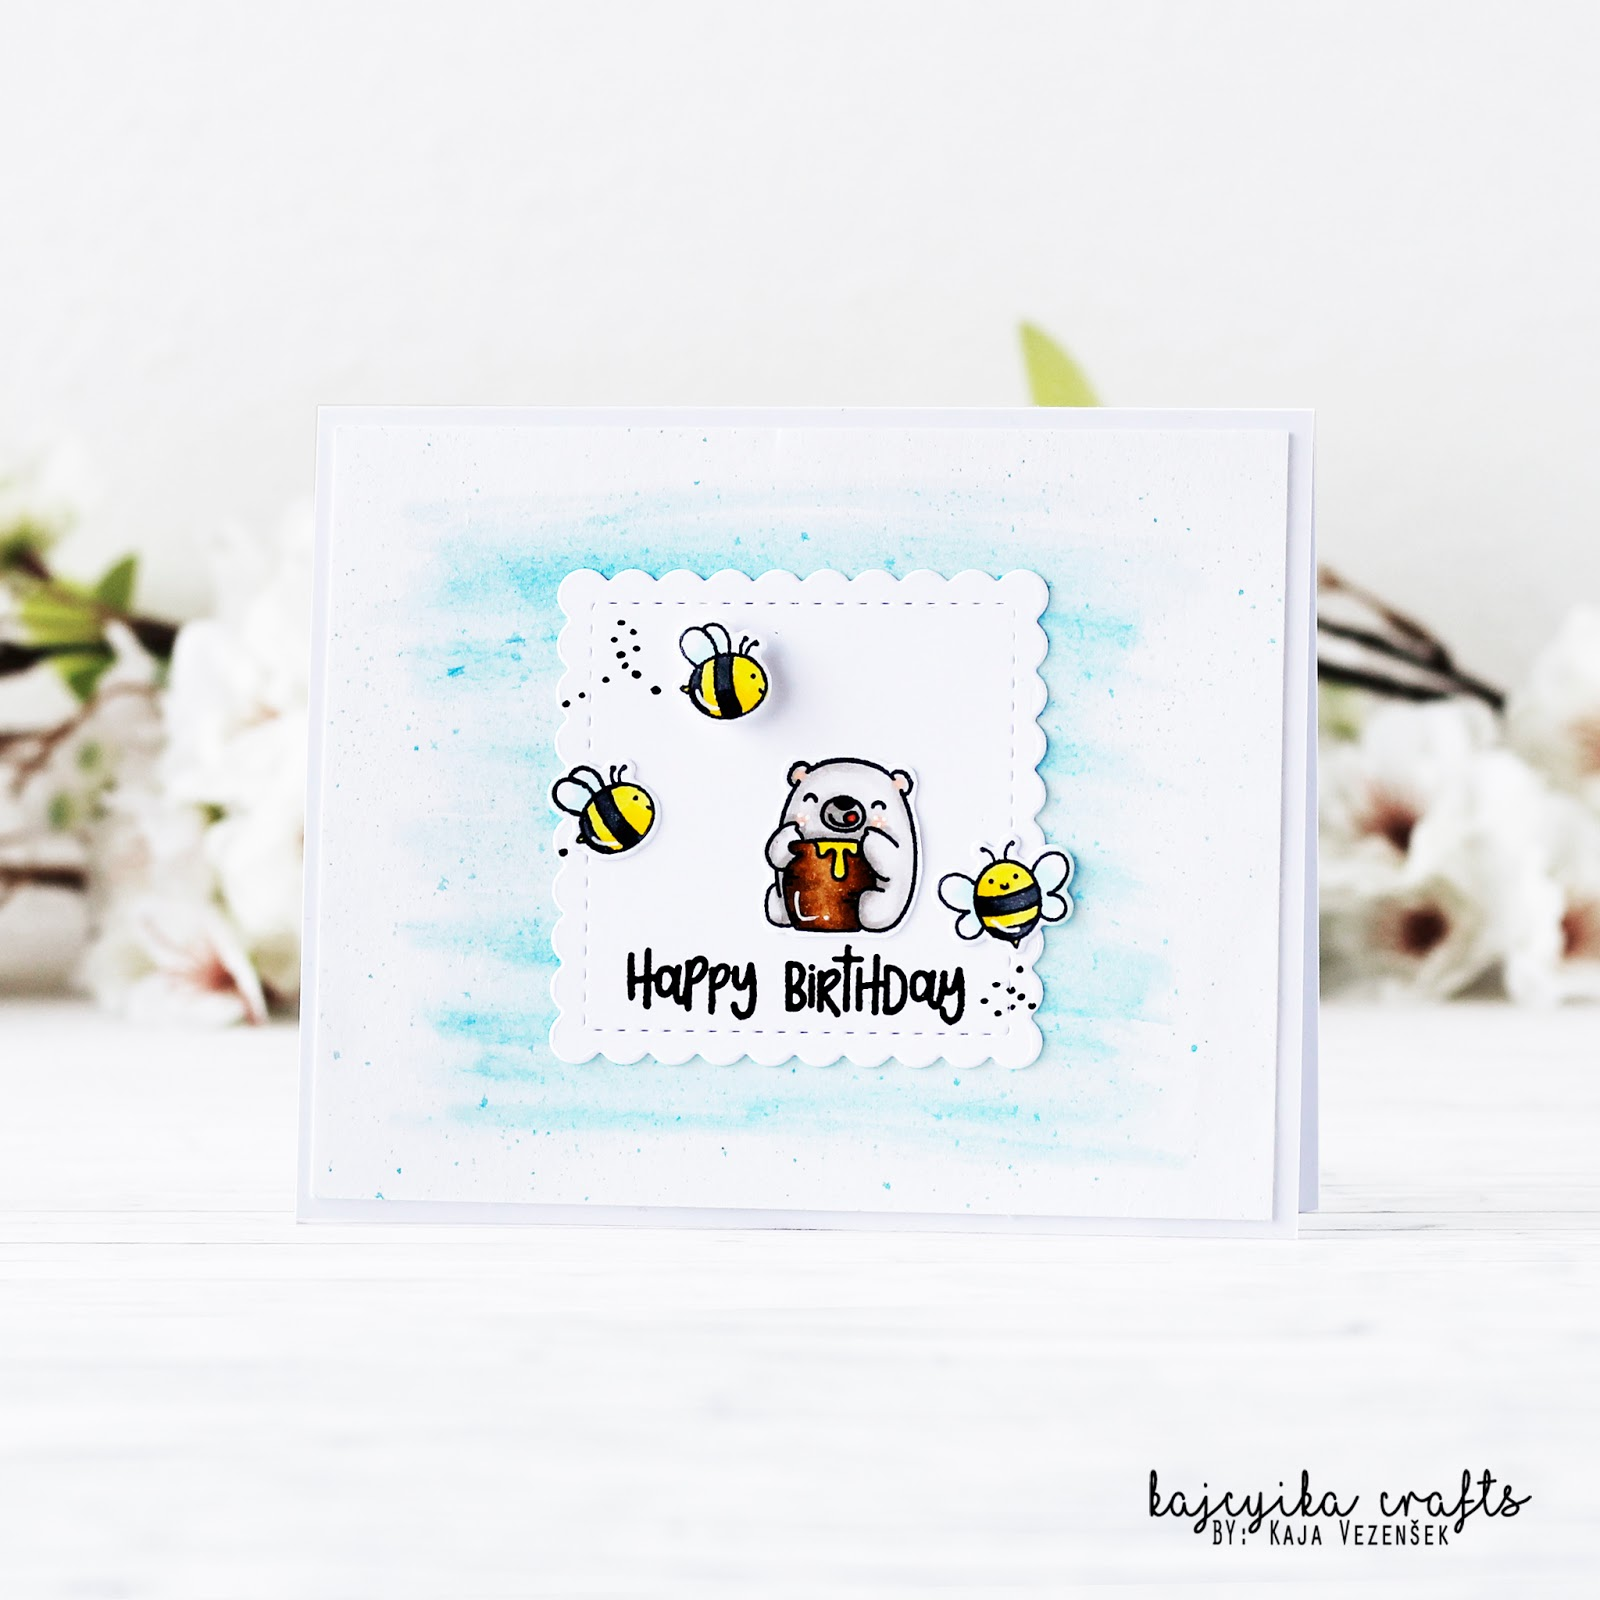 To bee or not to bee blog hop